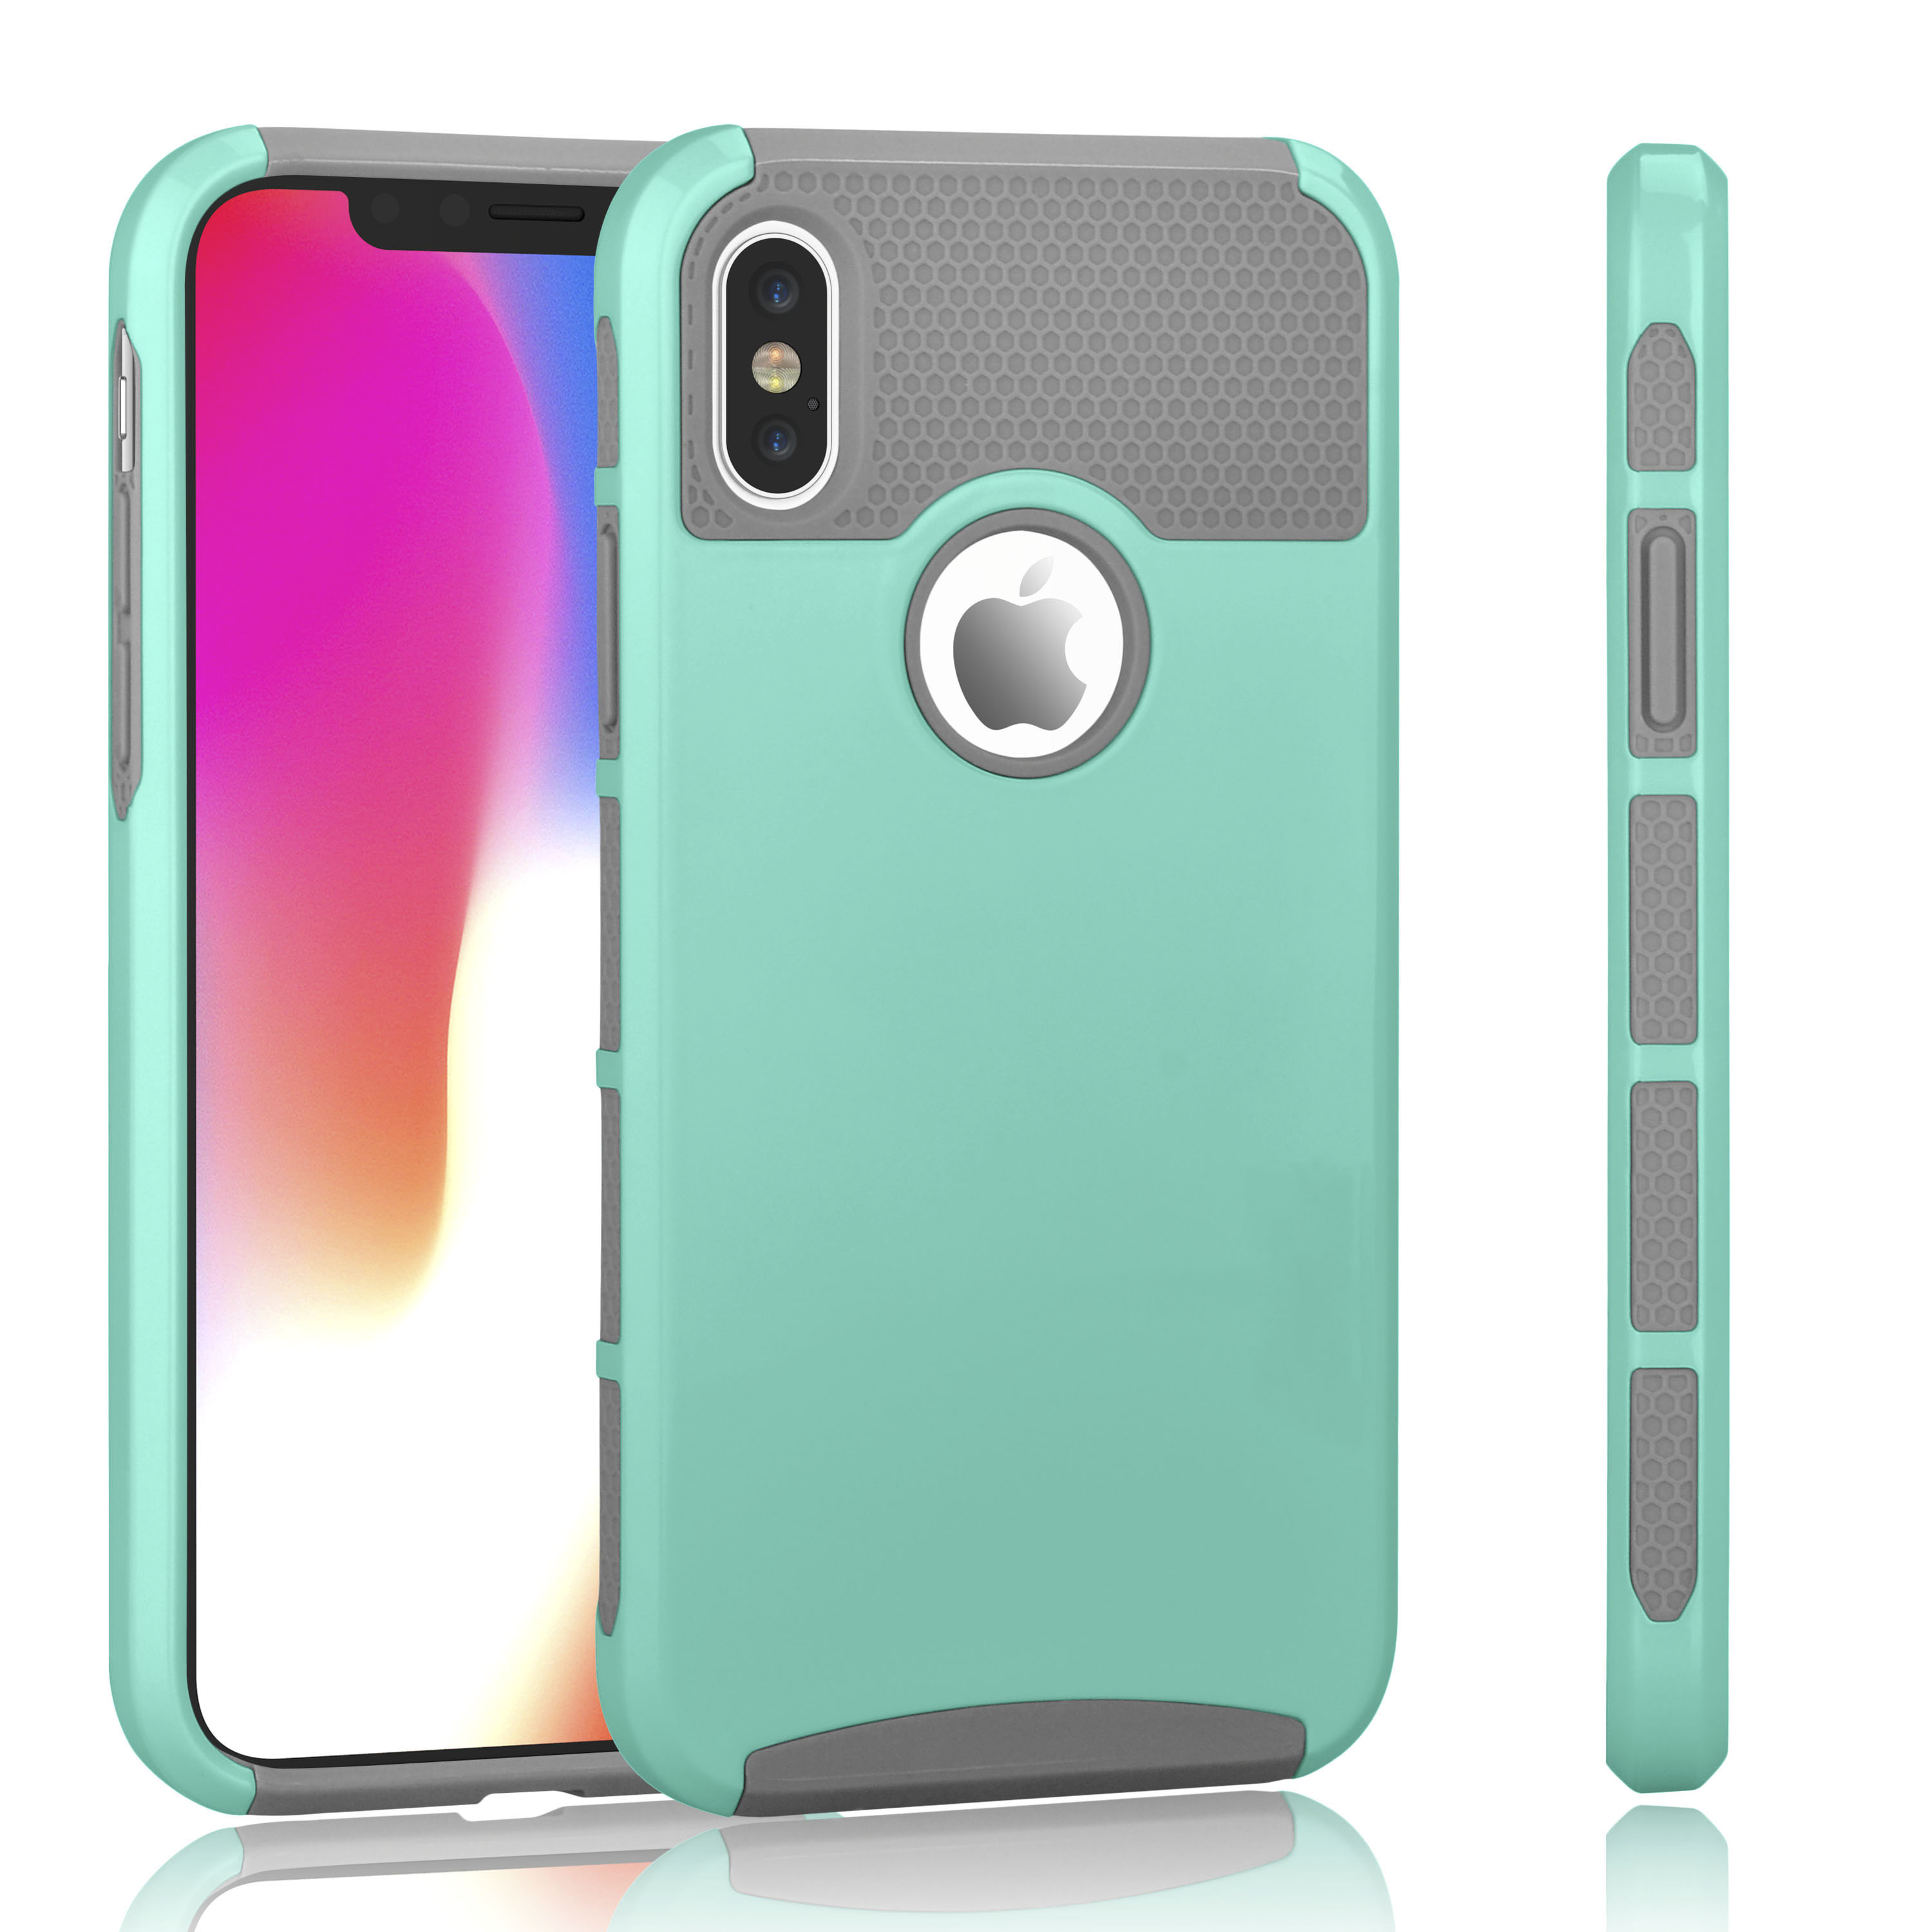 """Tekcoo iPhone X Case, iPhone XS Case, Slim Fit Dual Layer Soft Silicone & Hard Back Cover Bumper Protective Shock-Absorption & Anti-Scratch Case for Apple iPhone XS / iPhone X 5.8"""" - Turquoise"""